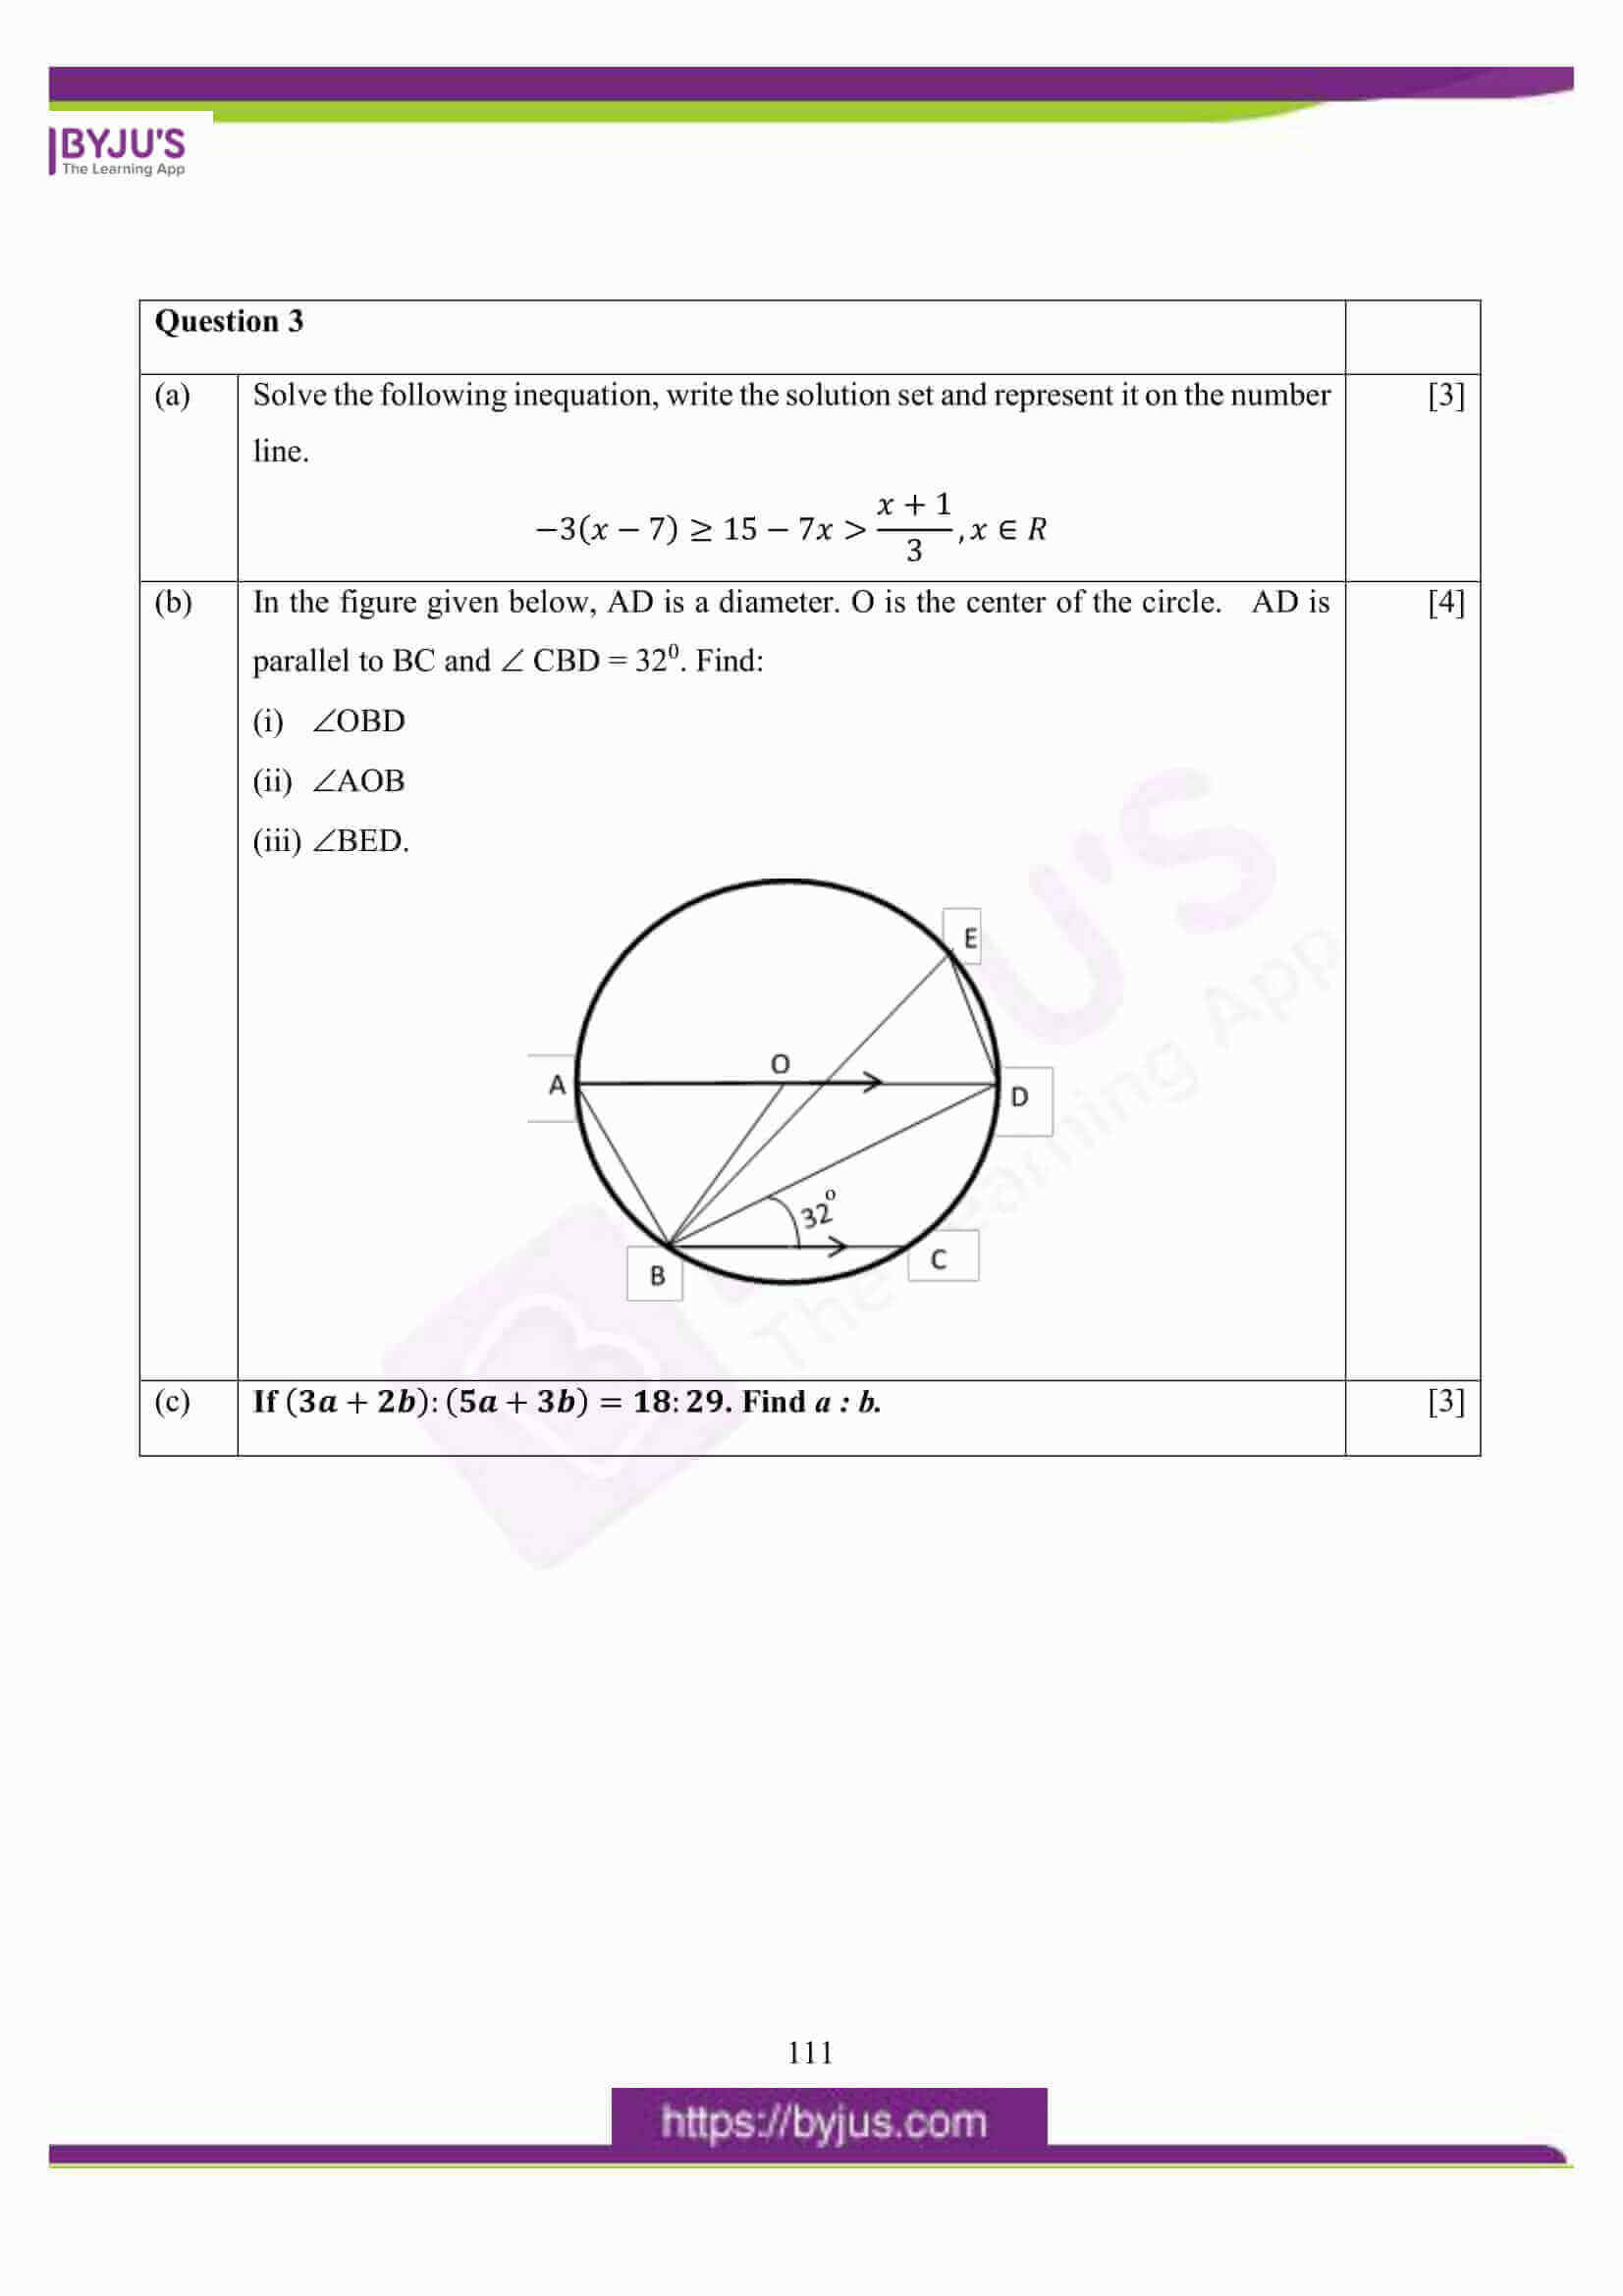 icse class 10 maths question paper solution 2016 05